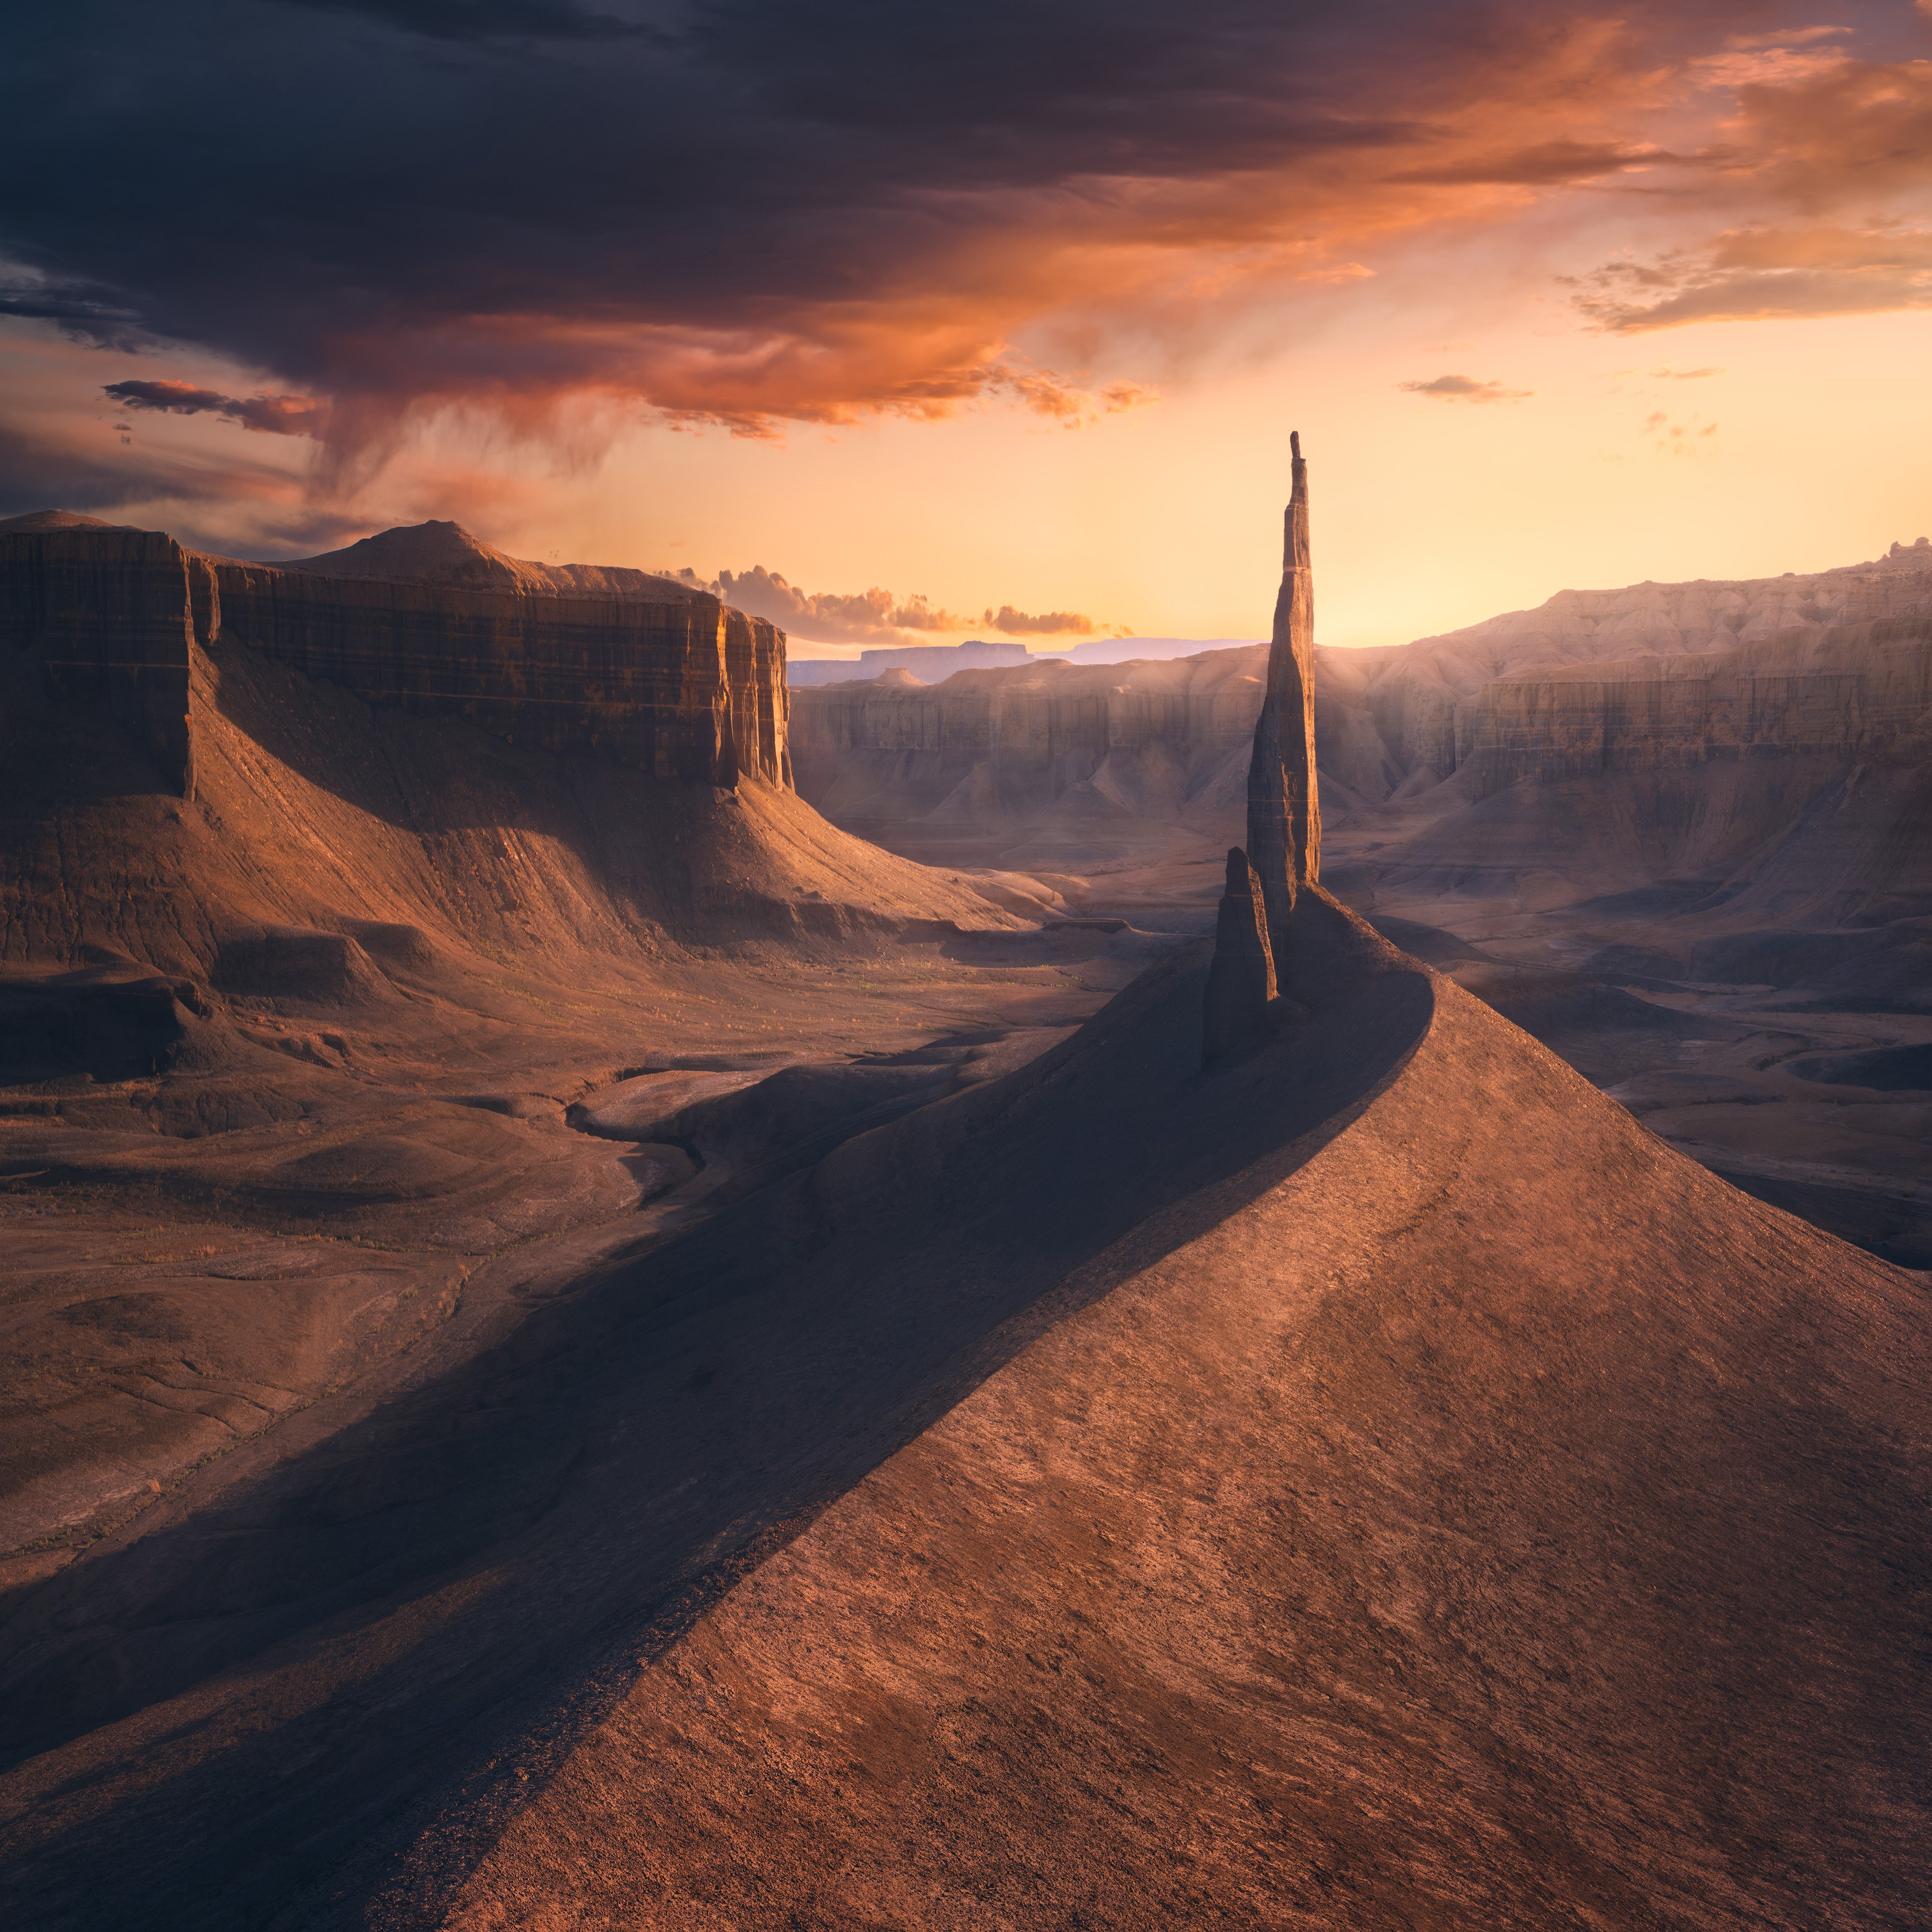 A photograph of a desert landscape, including one tall pointy natural structure